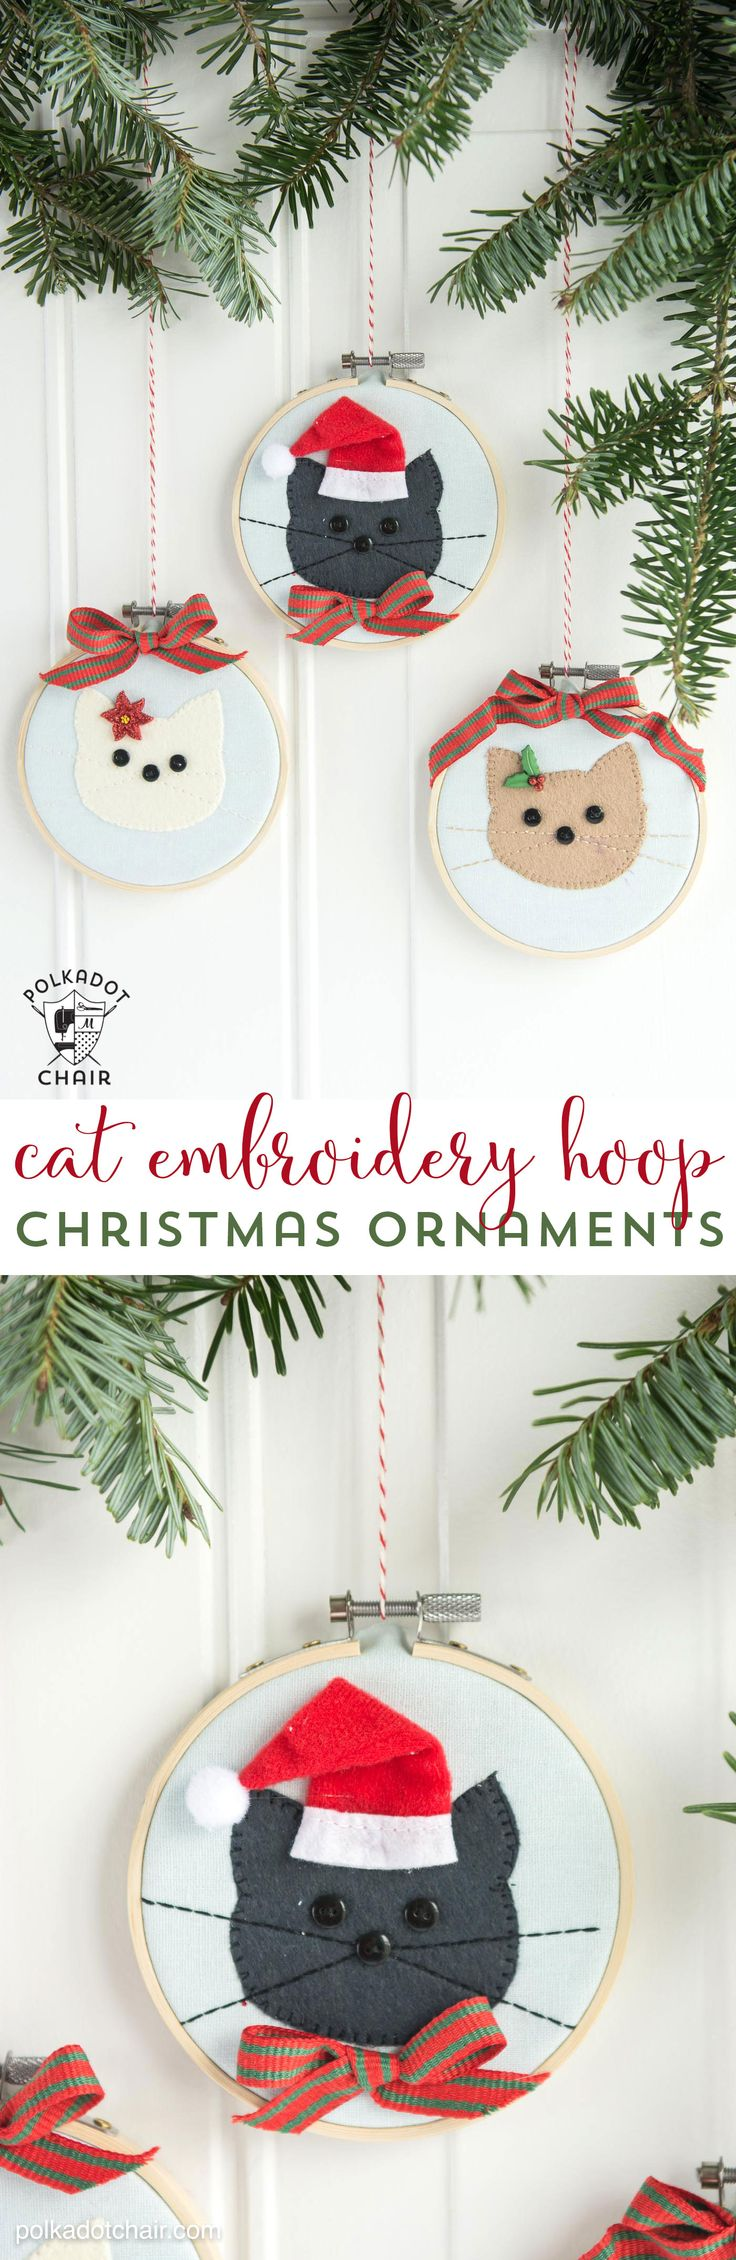 Cat Embroidery Hoop Christmas Ornaments 337 best